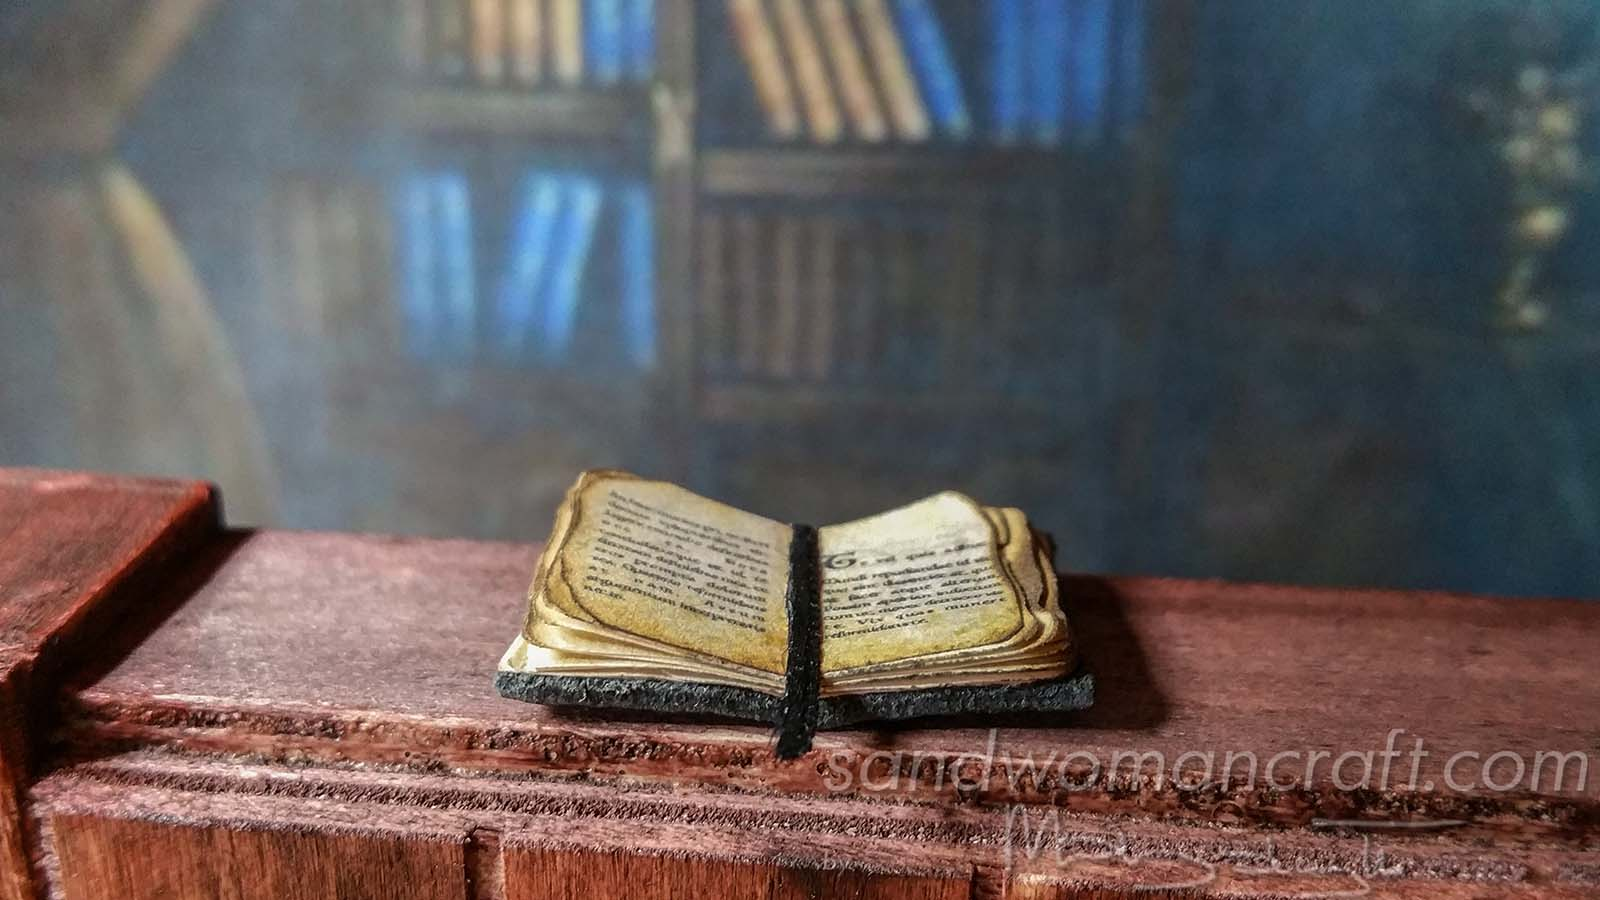 Miniature tiny book. Plain text.